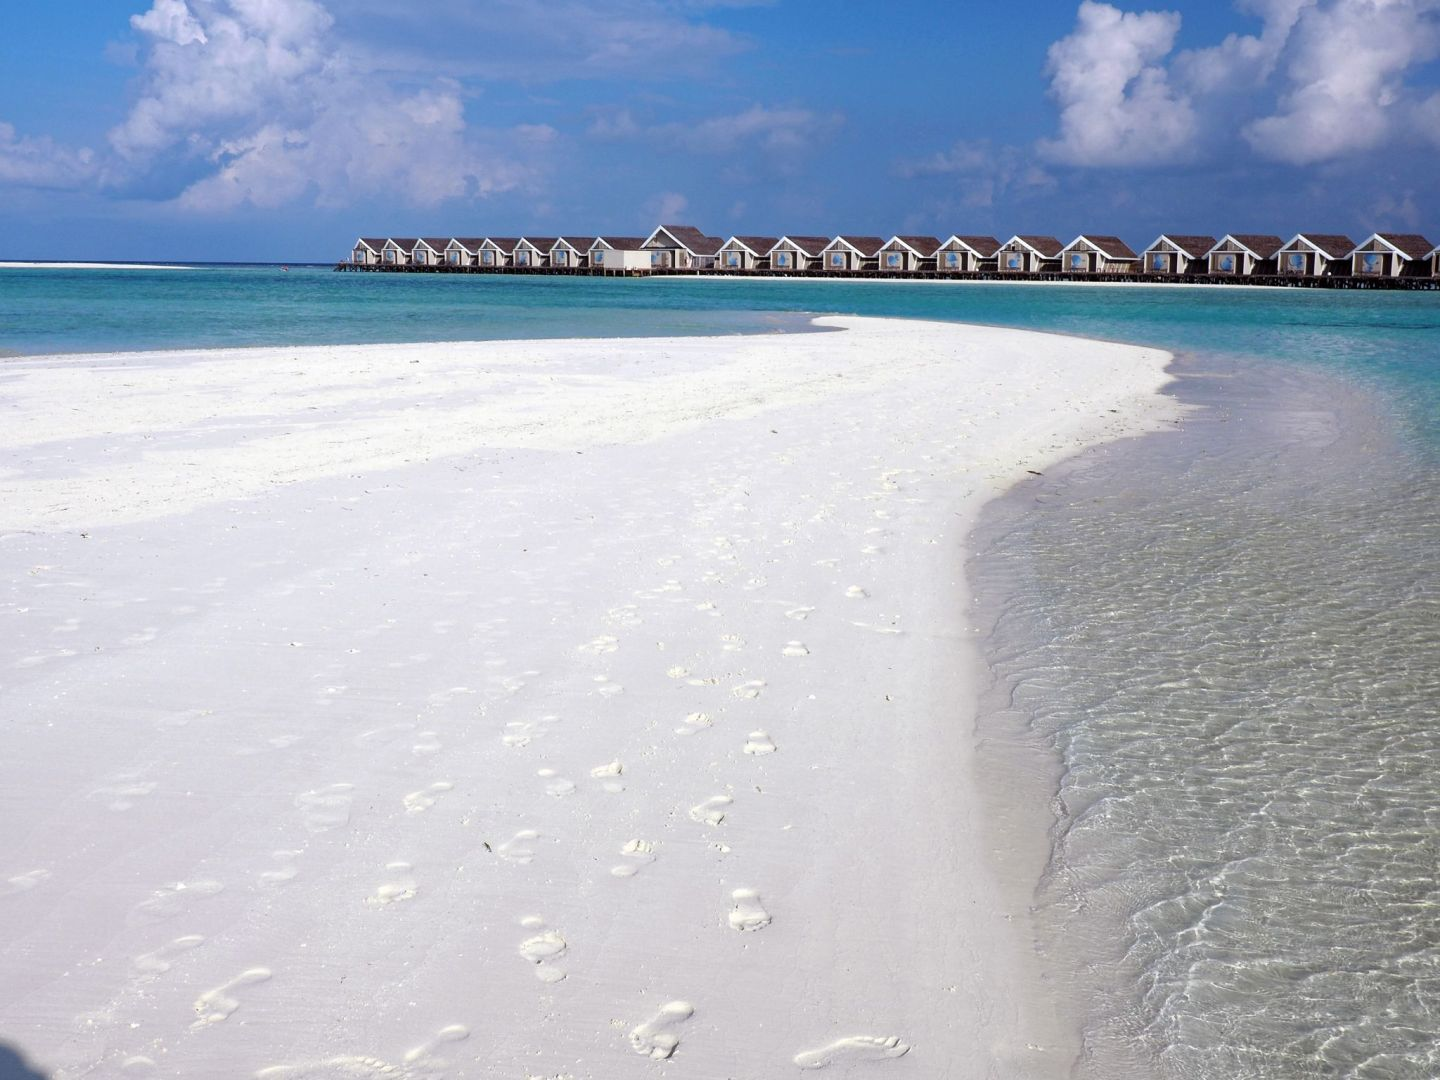 Beautiful sandbar in Maldives